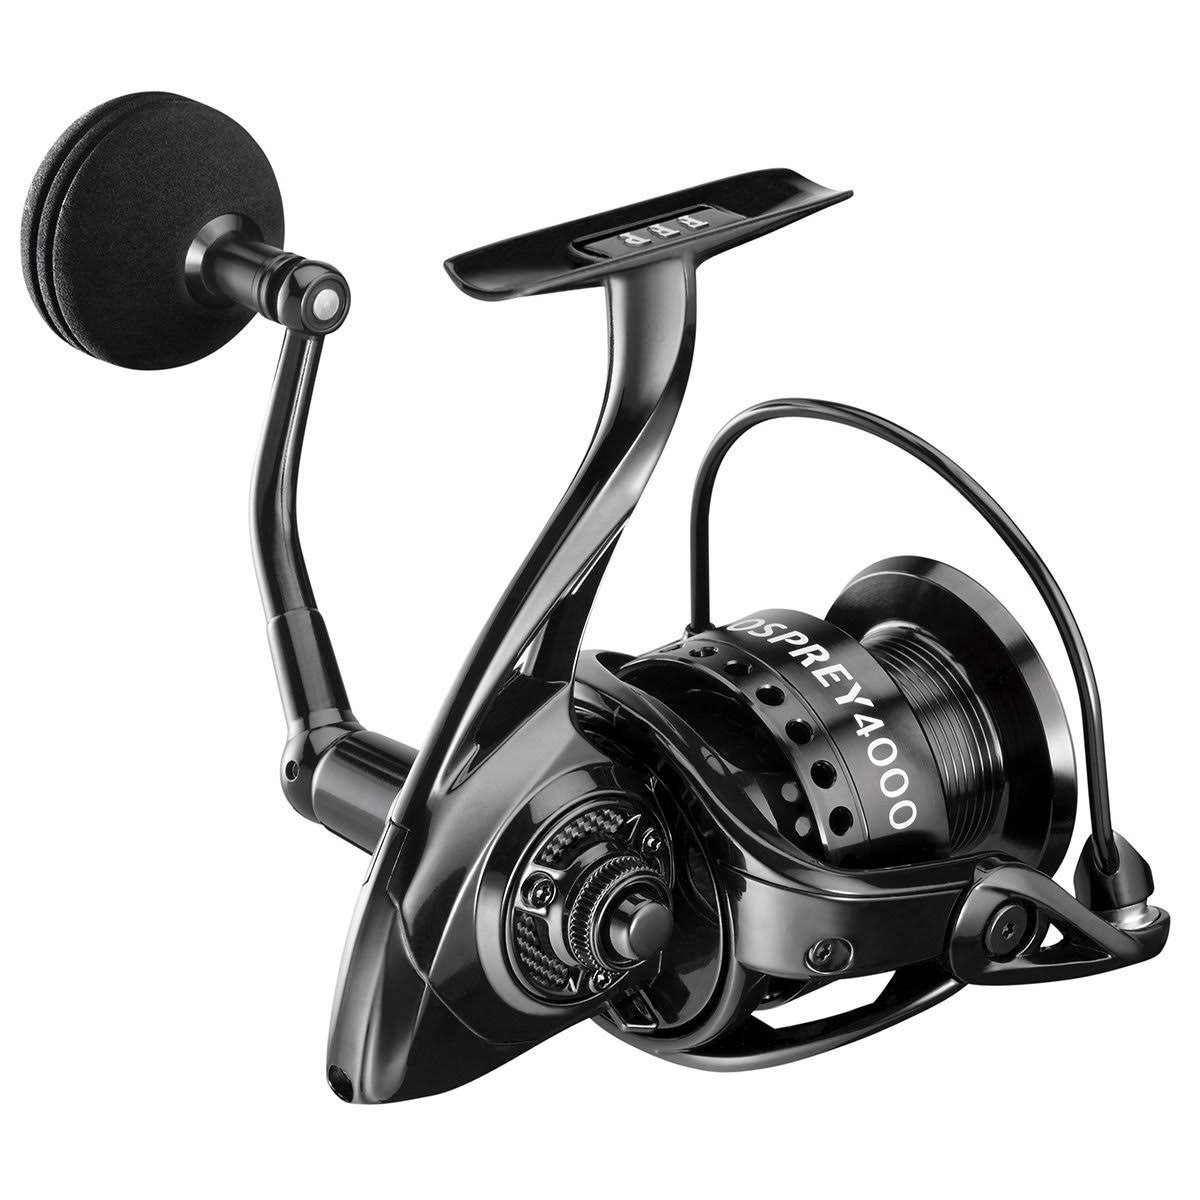 Florida Fishing Products Osprey 4000 Spinning Reel